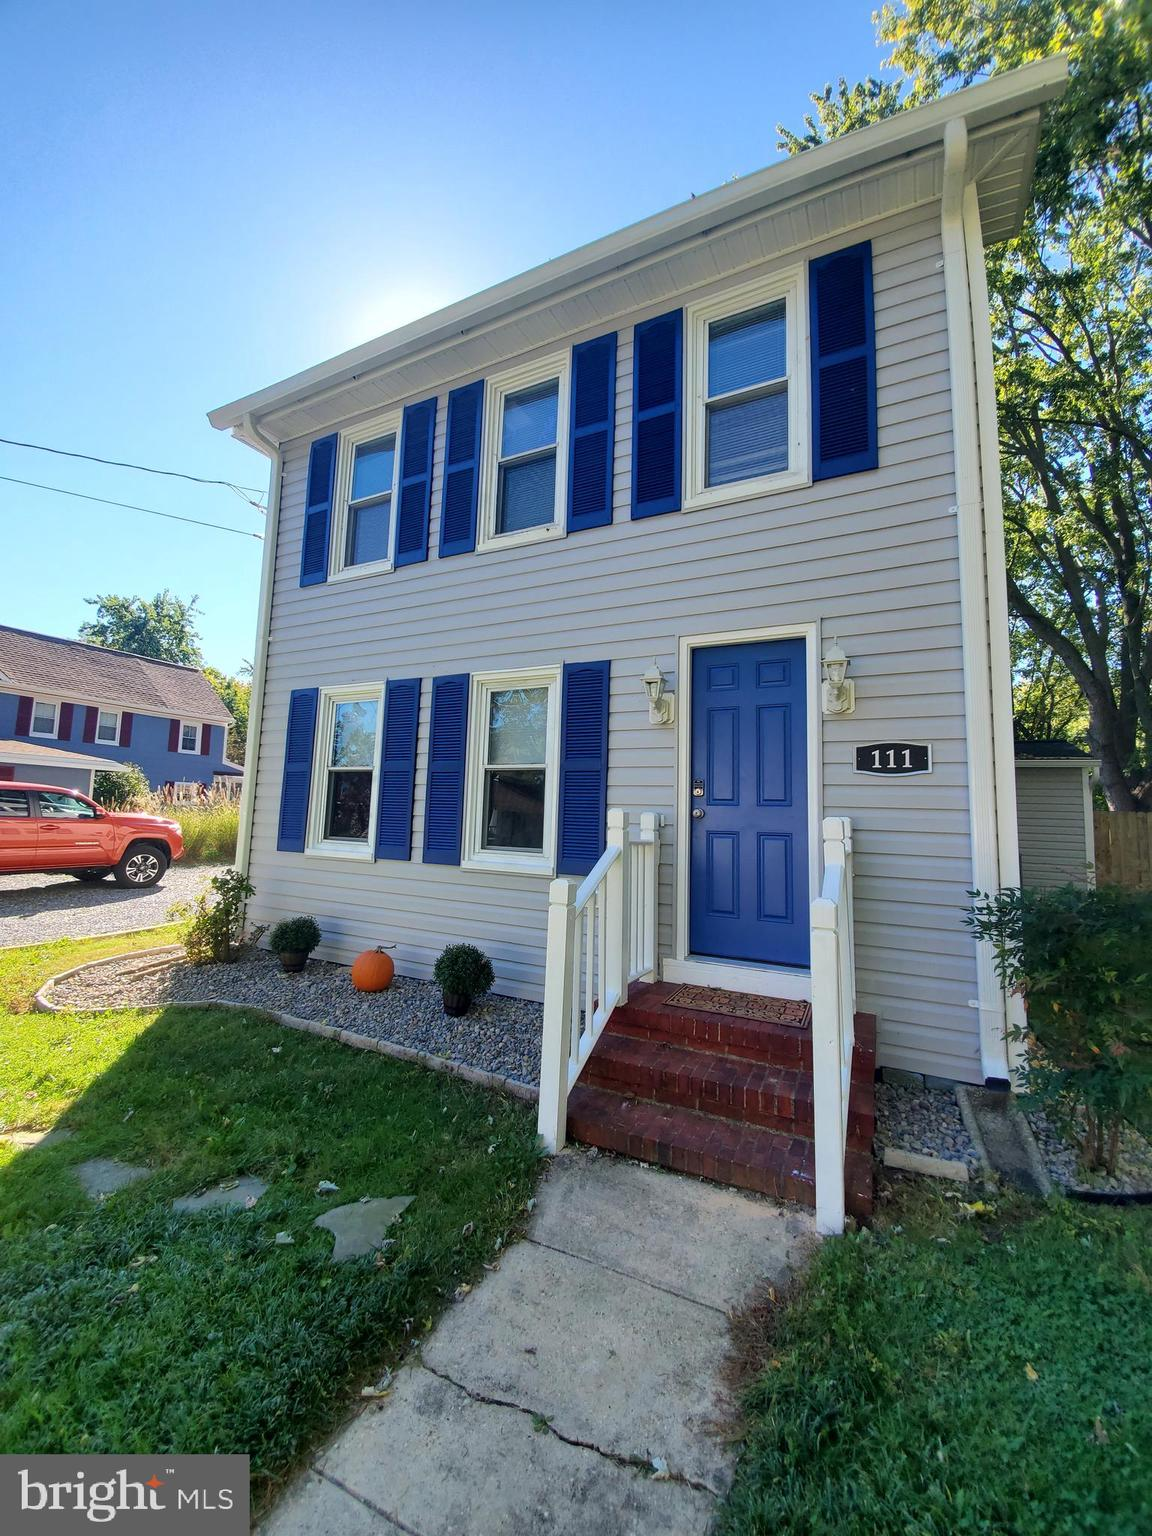 NEW NEW NEW!!!   OPEN HOUSE SATURDAY  10/23/21   2-4 PM This charming two story Colonial is tucked a